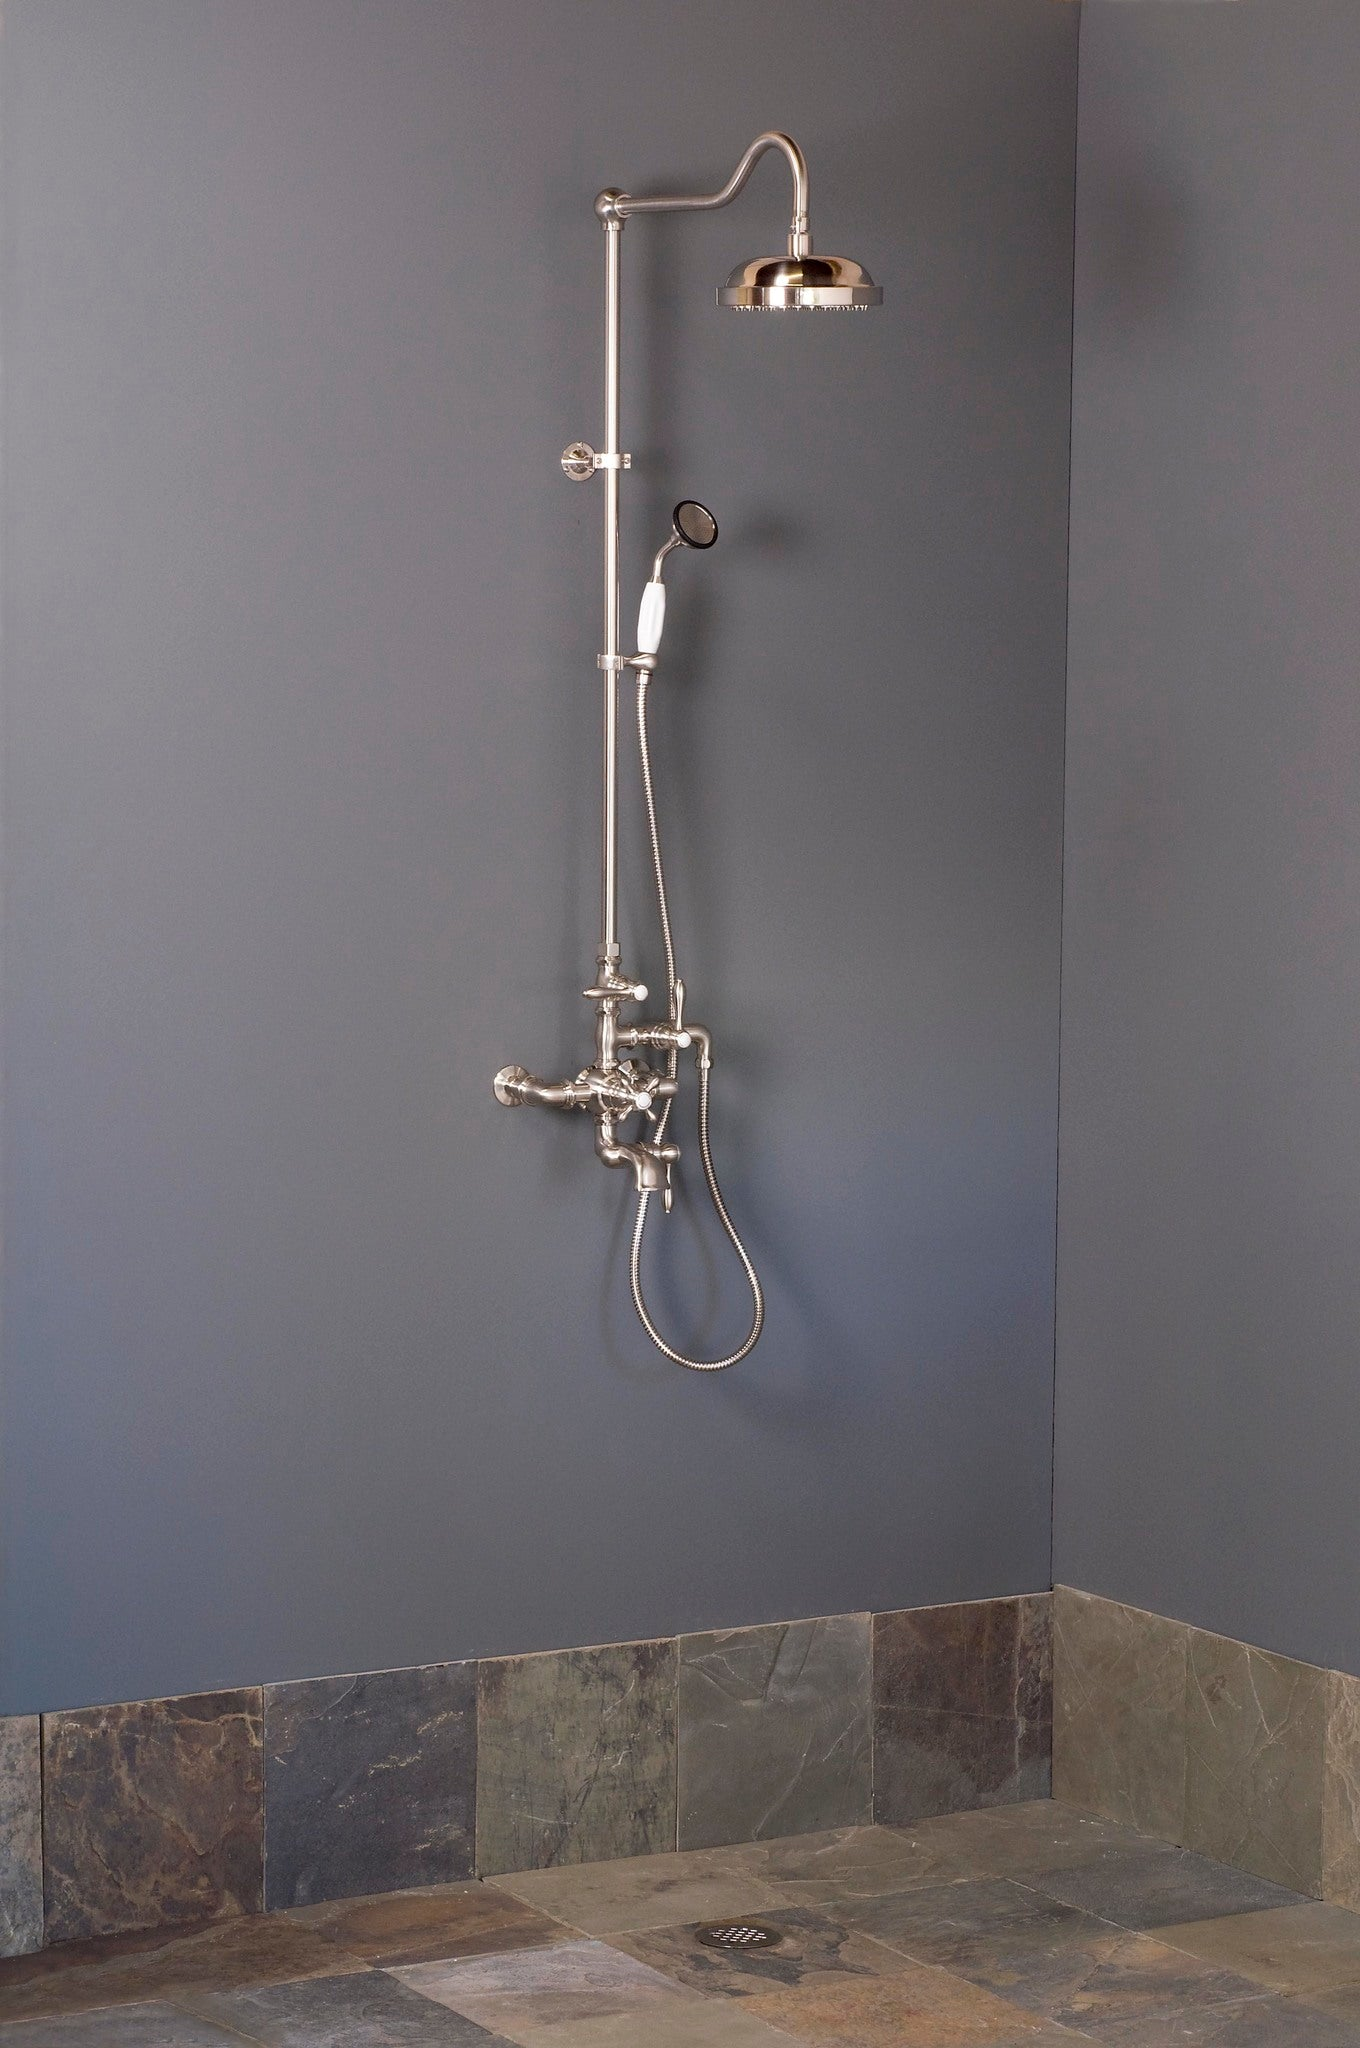 Shower Set with Handheld Shower & Tub Filler